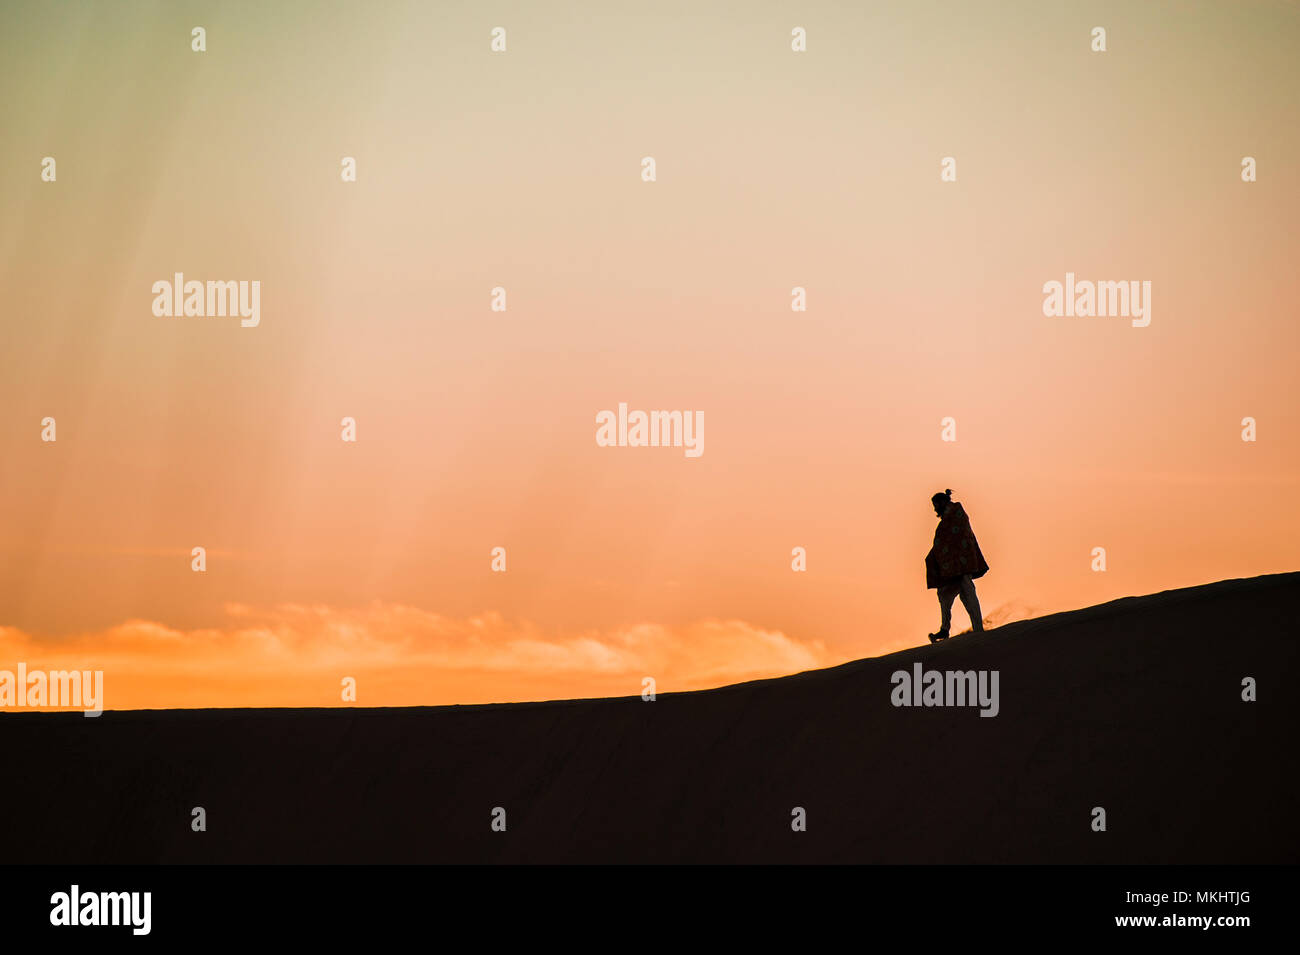 Man walk on a desert sand dunes at sunset in Rajasthan, India. Stock Photo